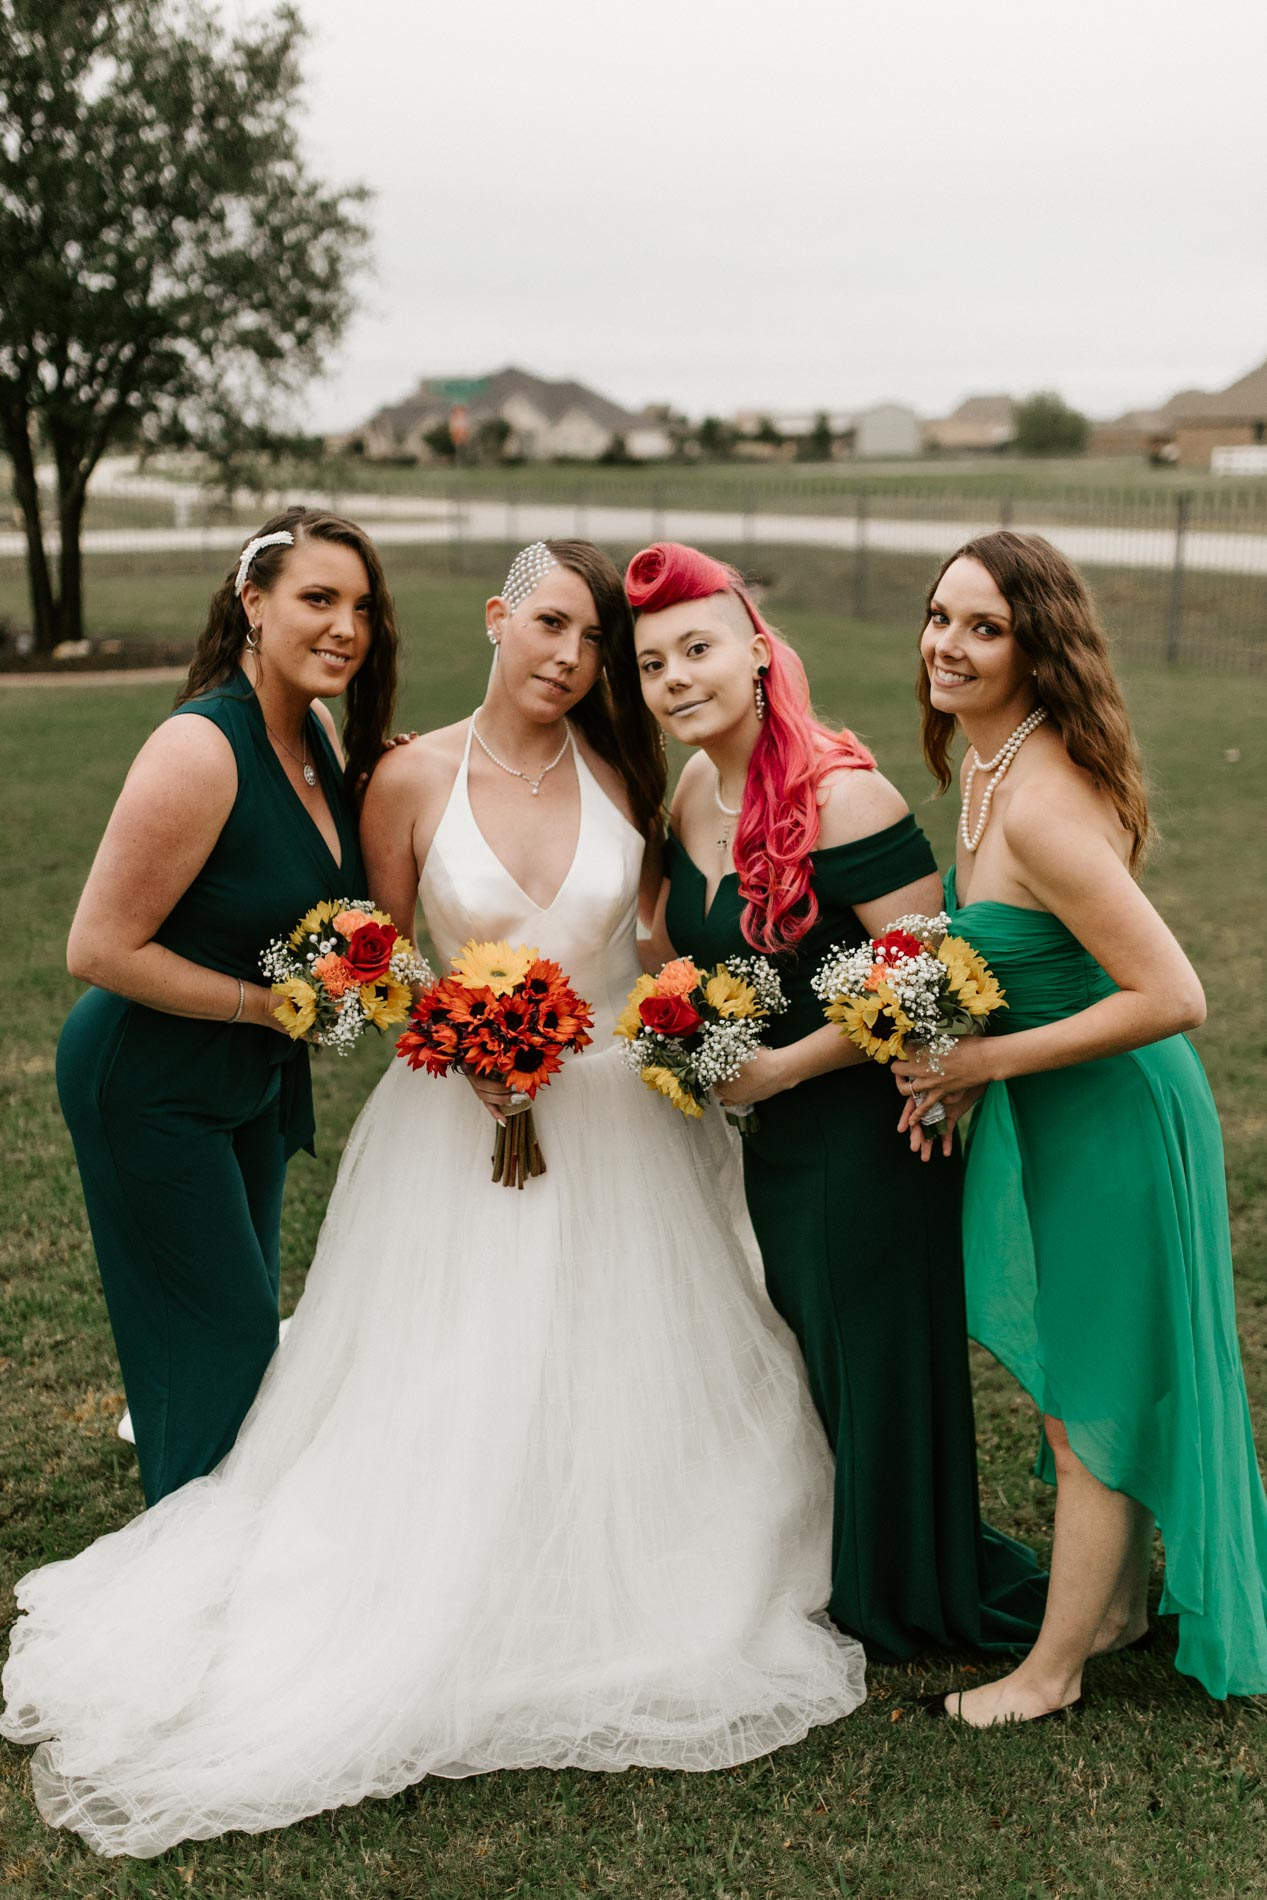 Unique wedding bridal party bridesmaids green dresses